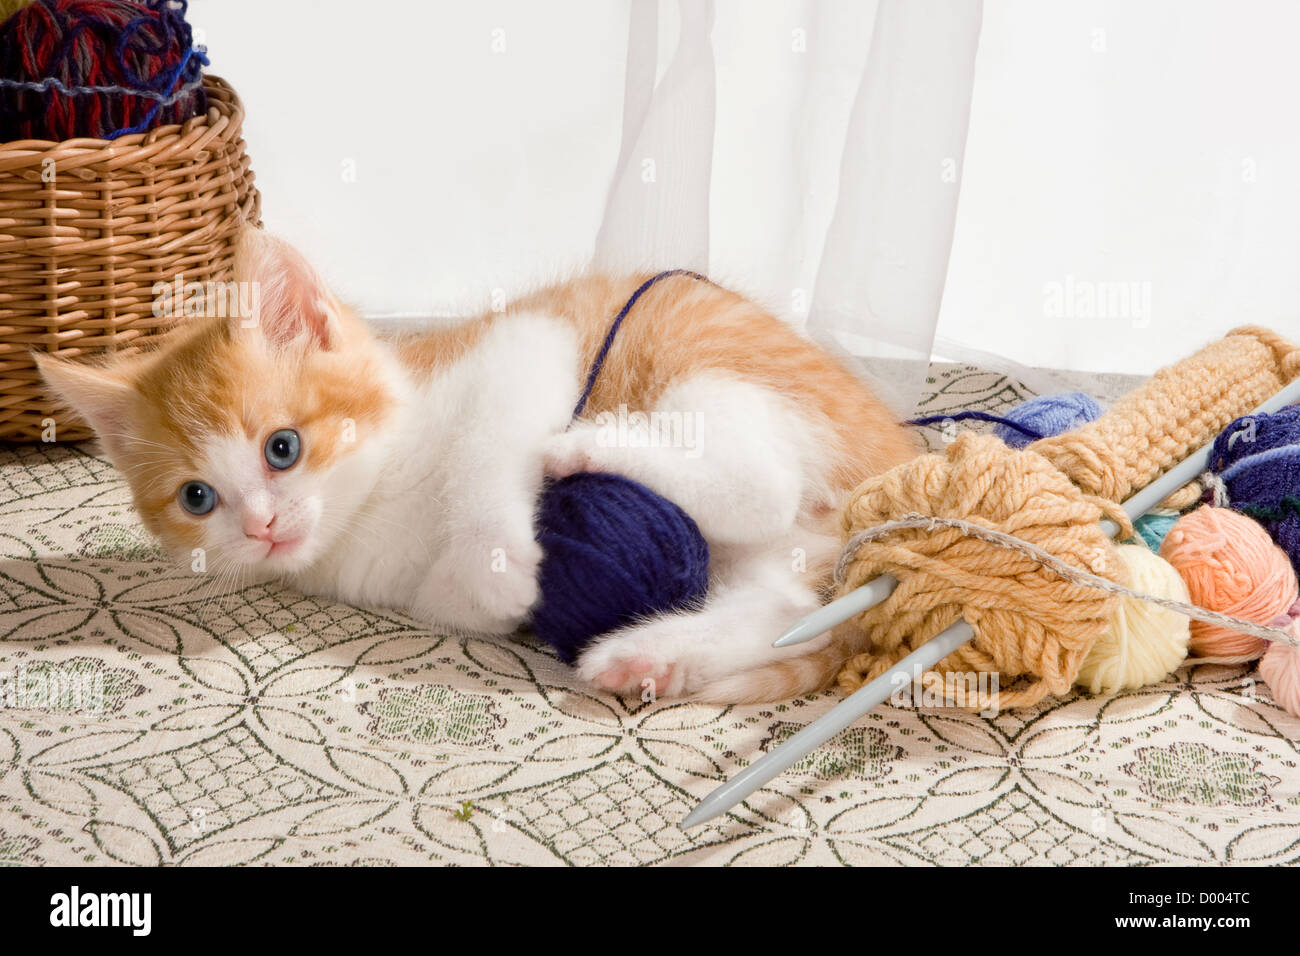 Six weeks old kitten being naughty with knitting wool Stock Photo